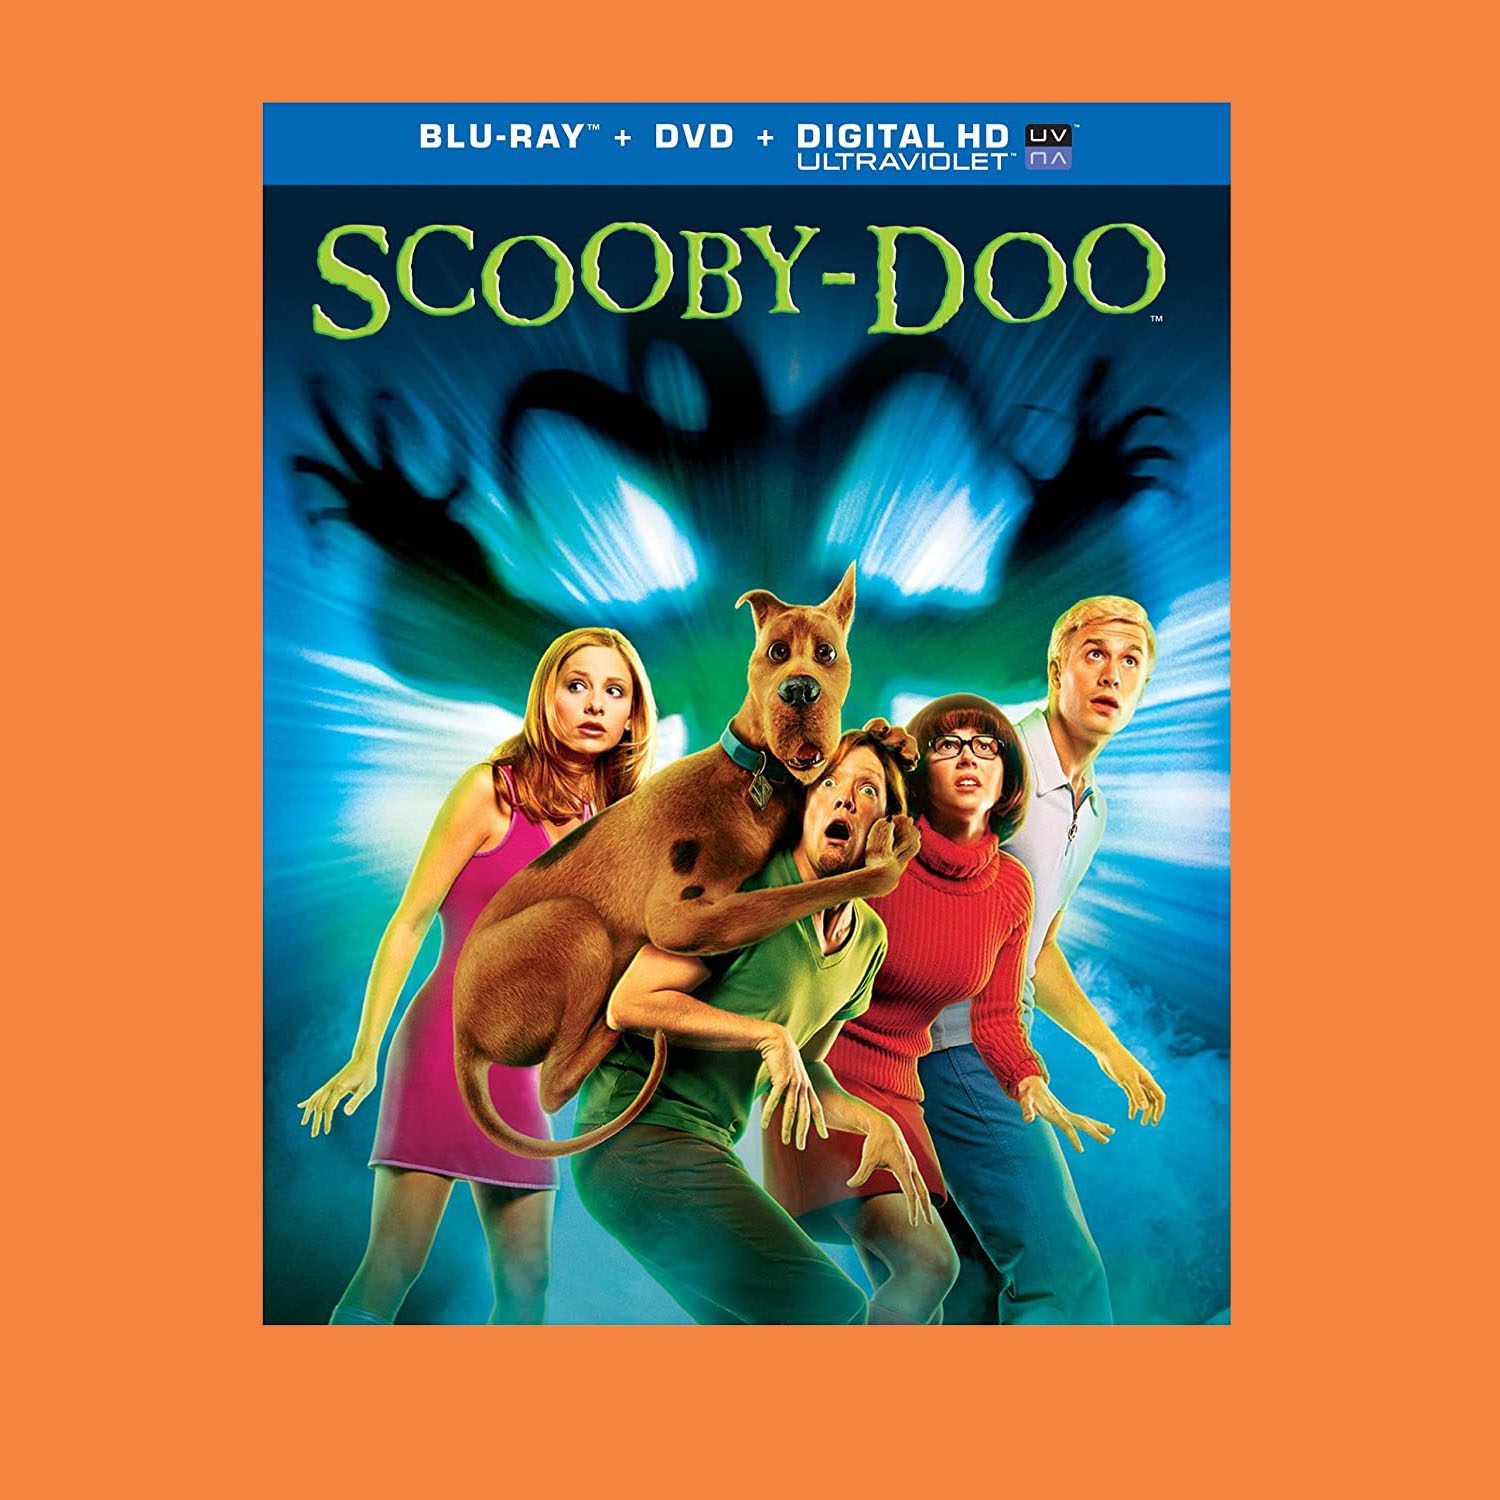 Scooby-Doo (PG) movie